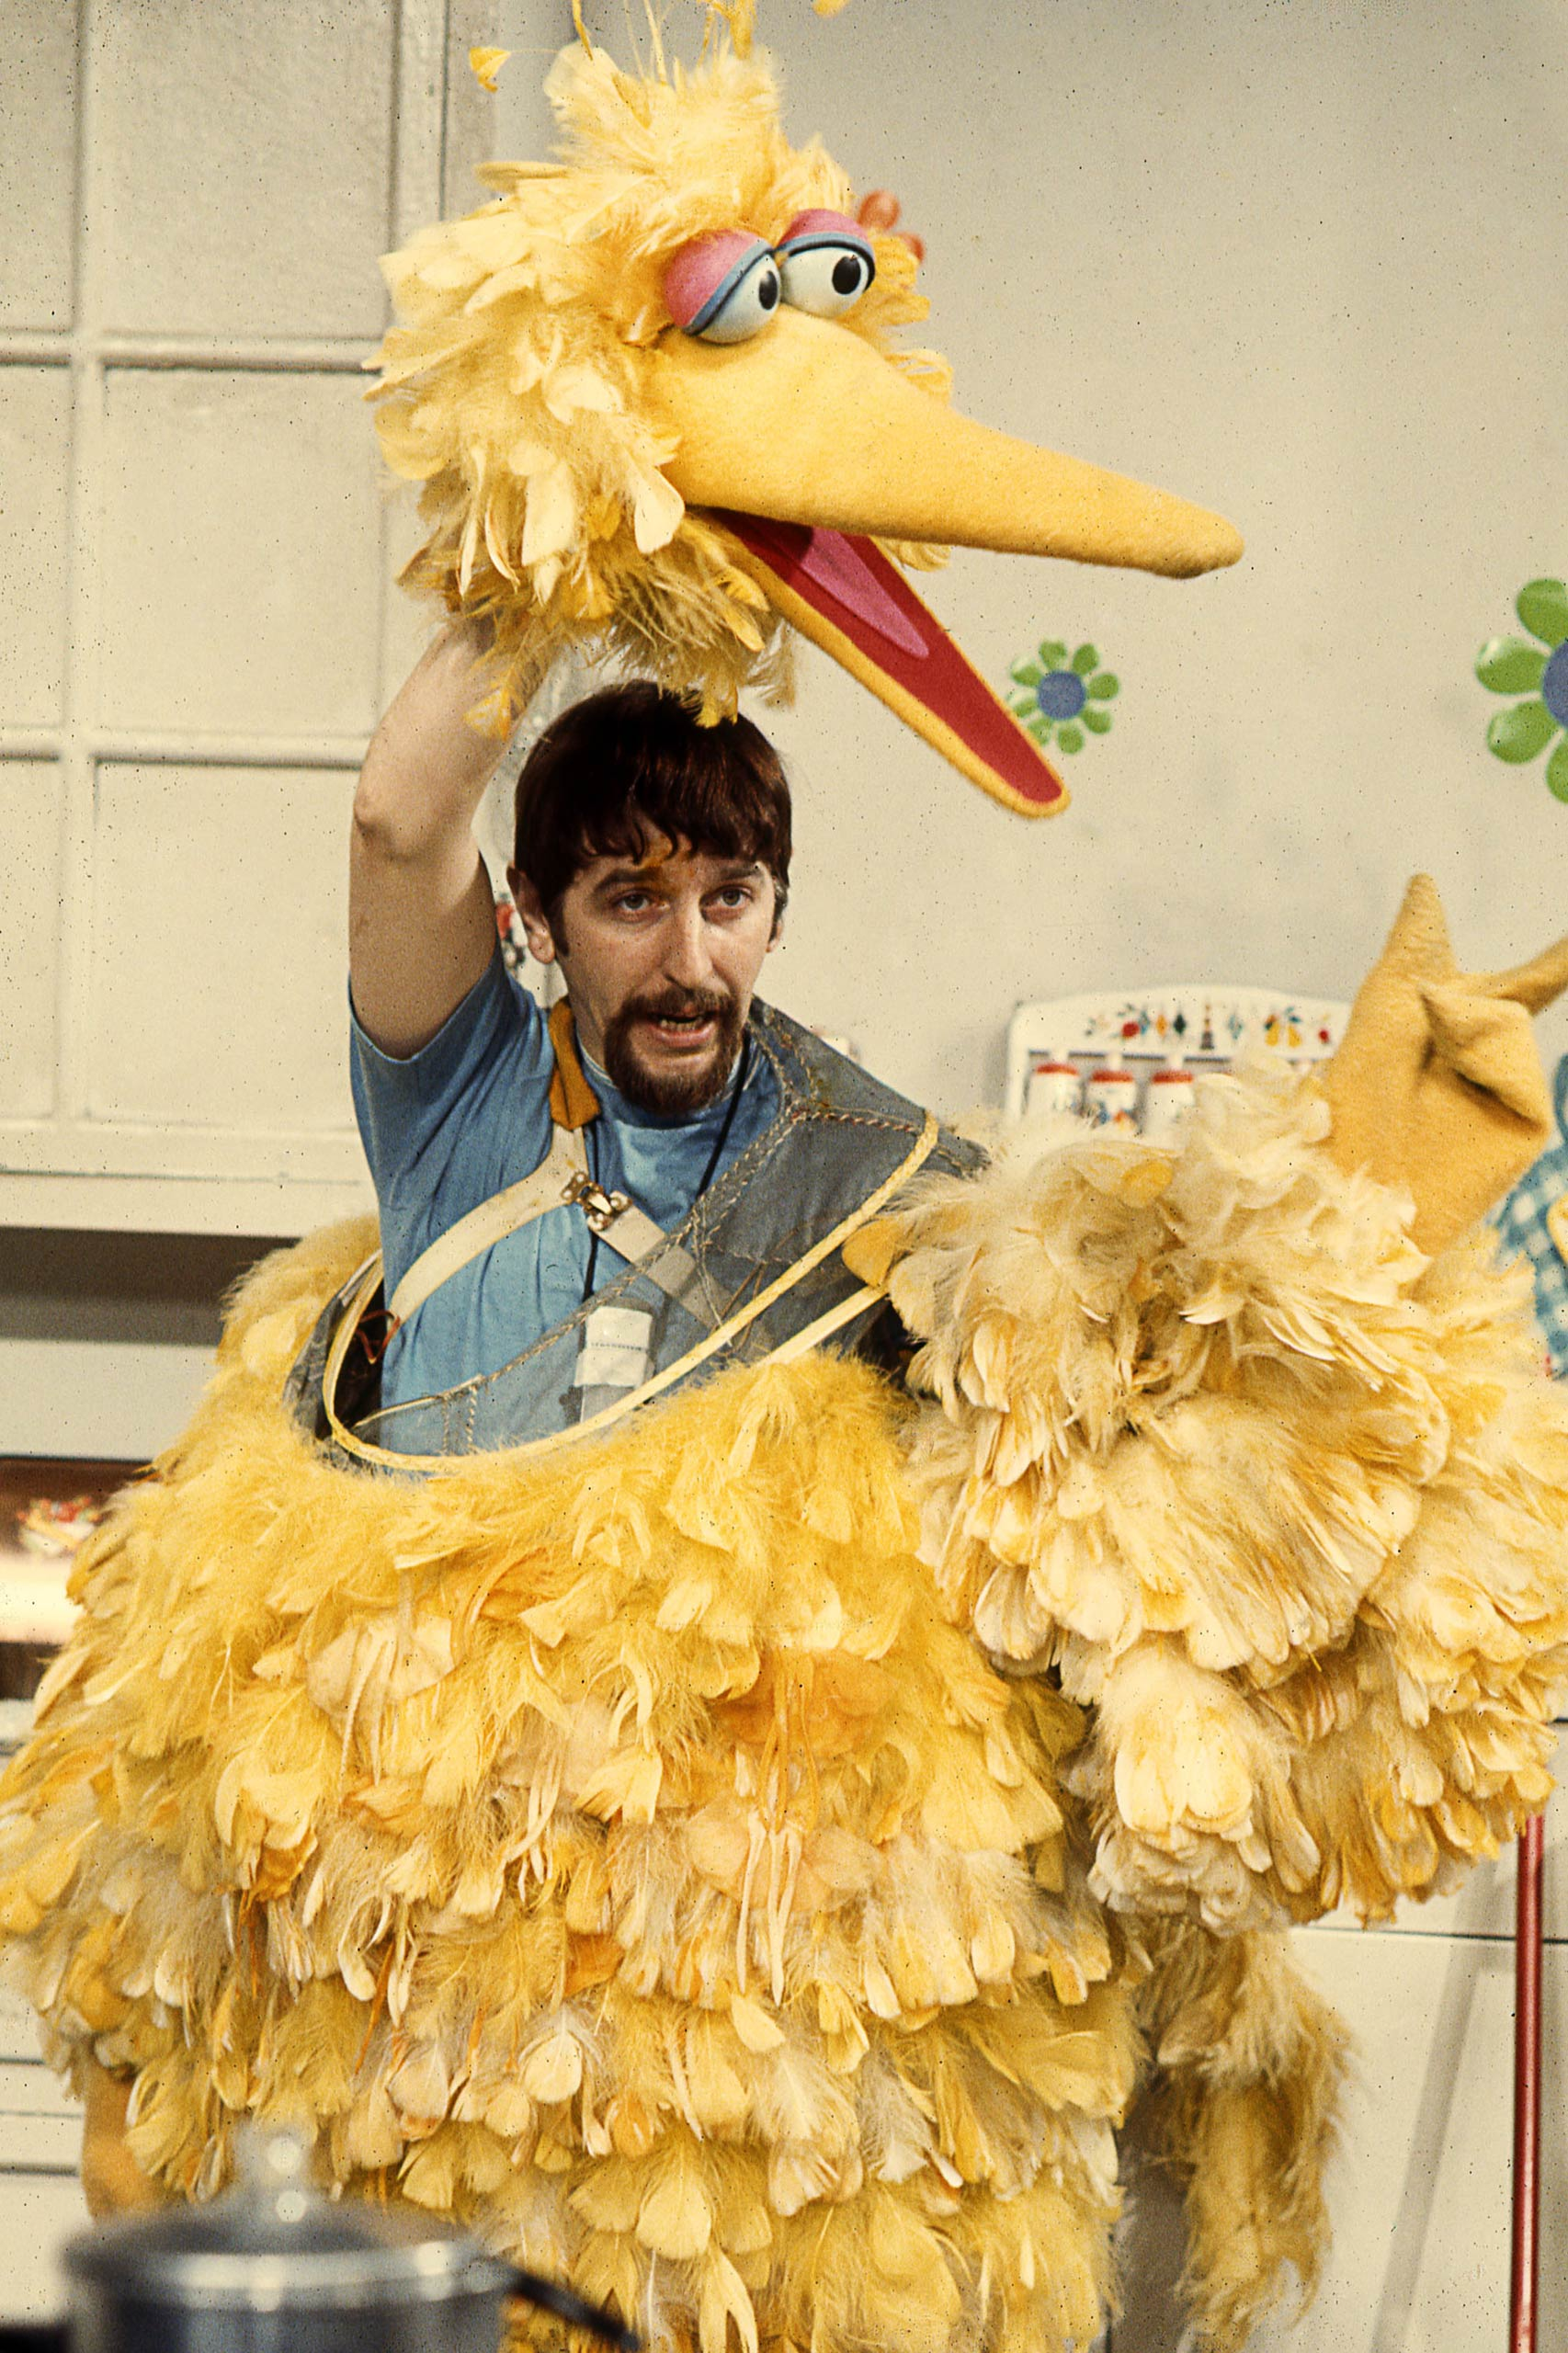 Caroll Spinney joined Sesame Street in its inaugural 1969 season playing both Big Bird and Oscar the Grouch.